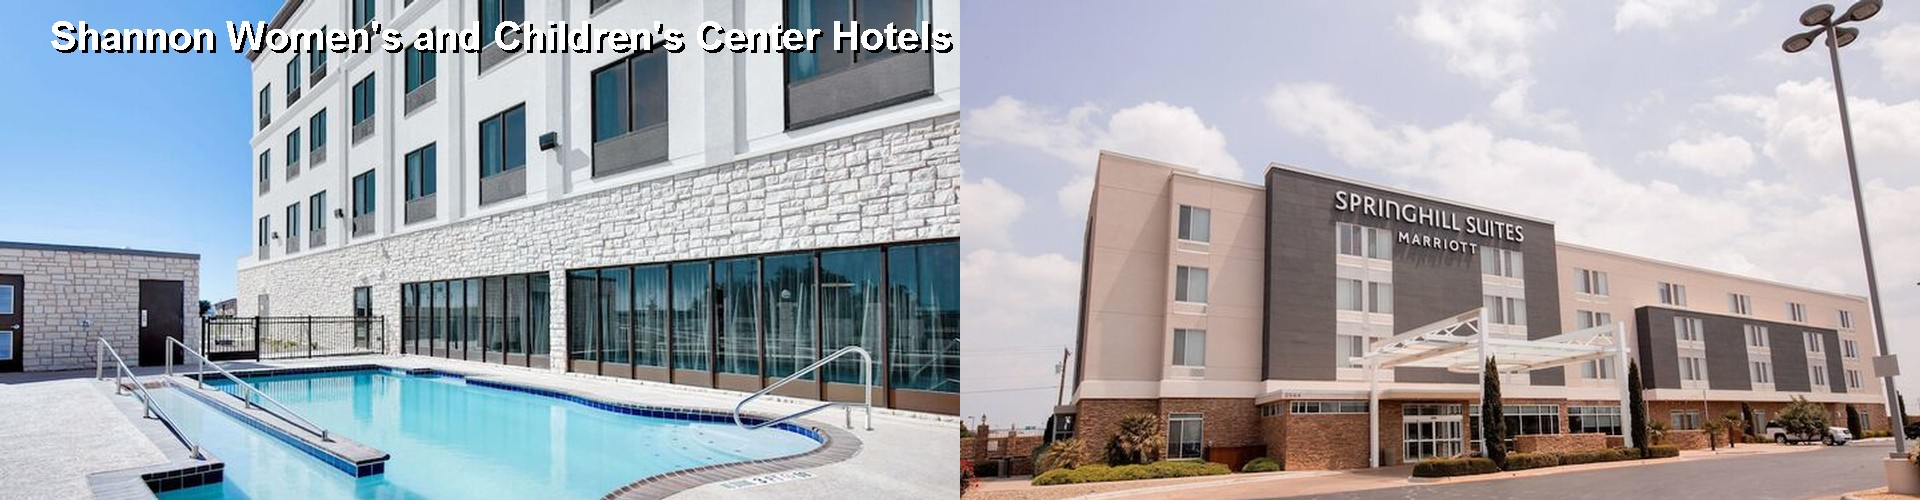 4 Best Hotels near Shannon Women's and Children's Center